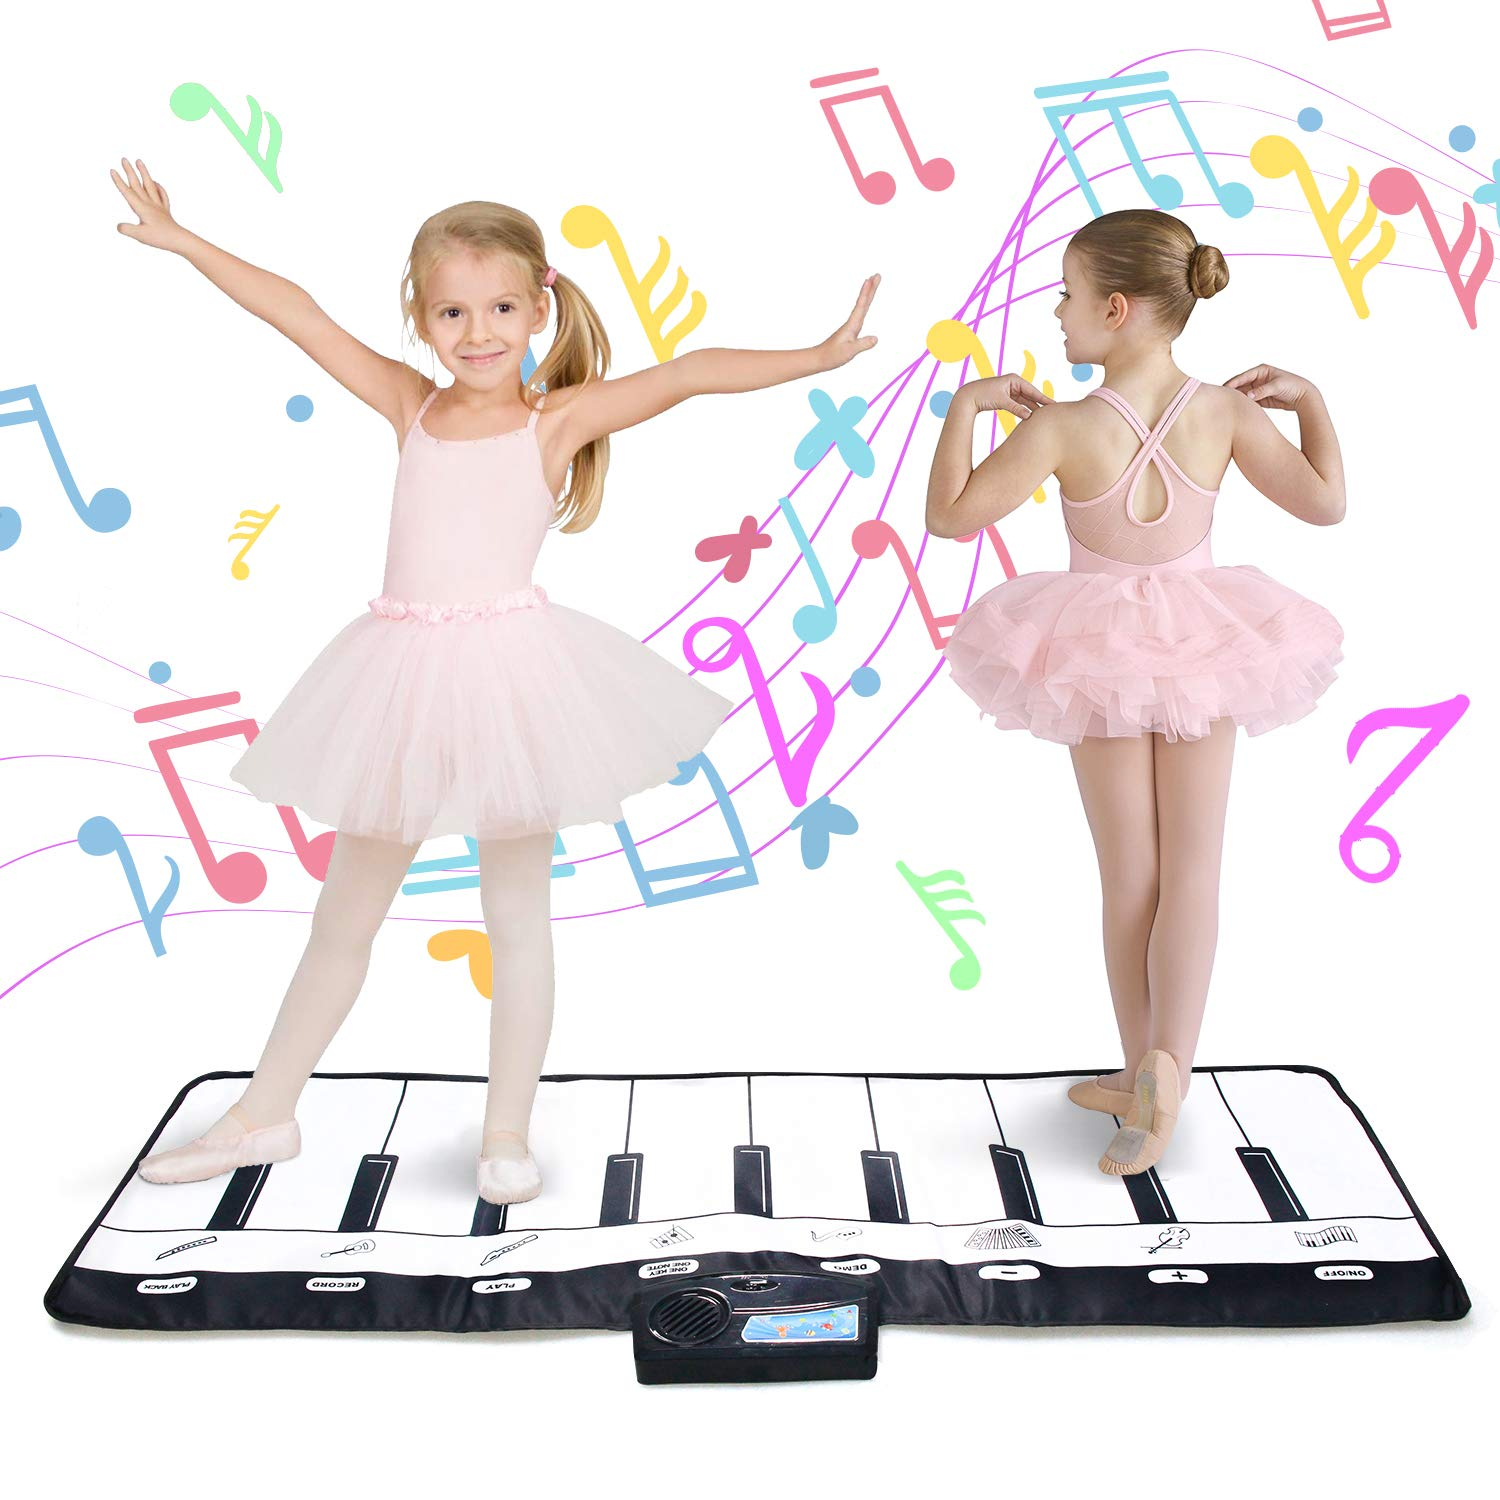 zoordo Musical Piano Mat, Early Educational Learning Toy 8 Different Instruments Sound 19 Keyboard with Play Record Playback Demo Mode for Toddlers Kids Children (DEDIUM 43.3 x 14.2 inches) by zoordo